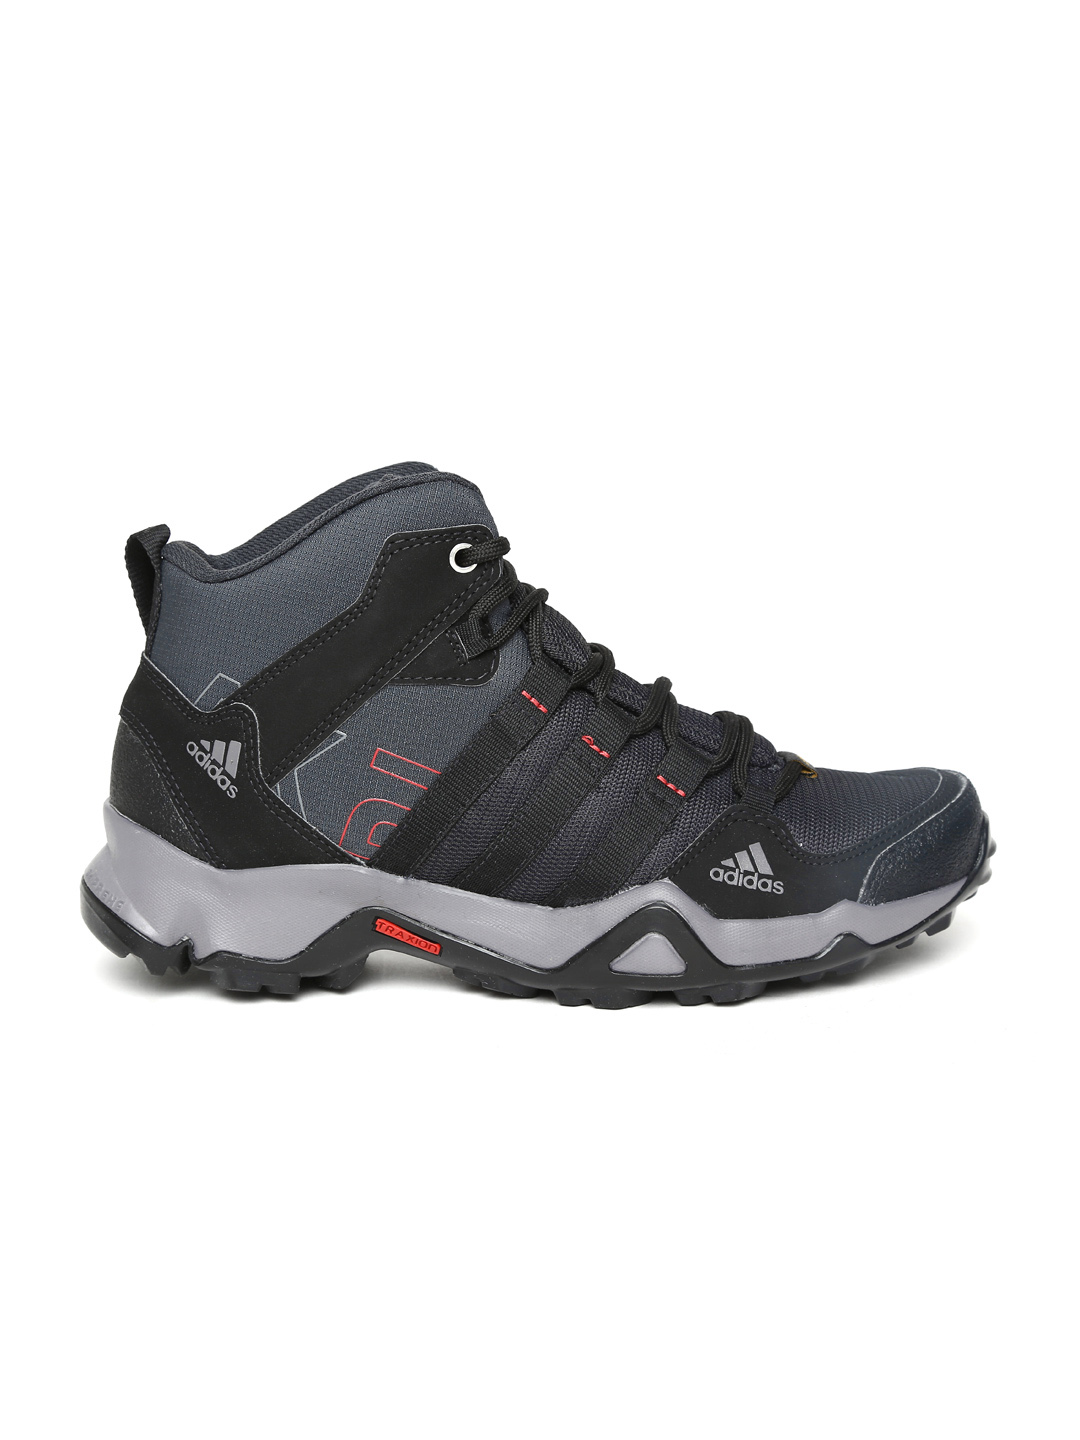 Myntra Adidas Men Black AX2 Mid Outdoor Shoes 625376 | Buy Myntra Adidas Sports Shoes At Best ...